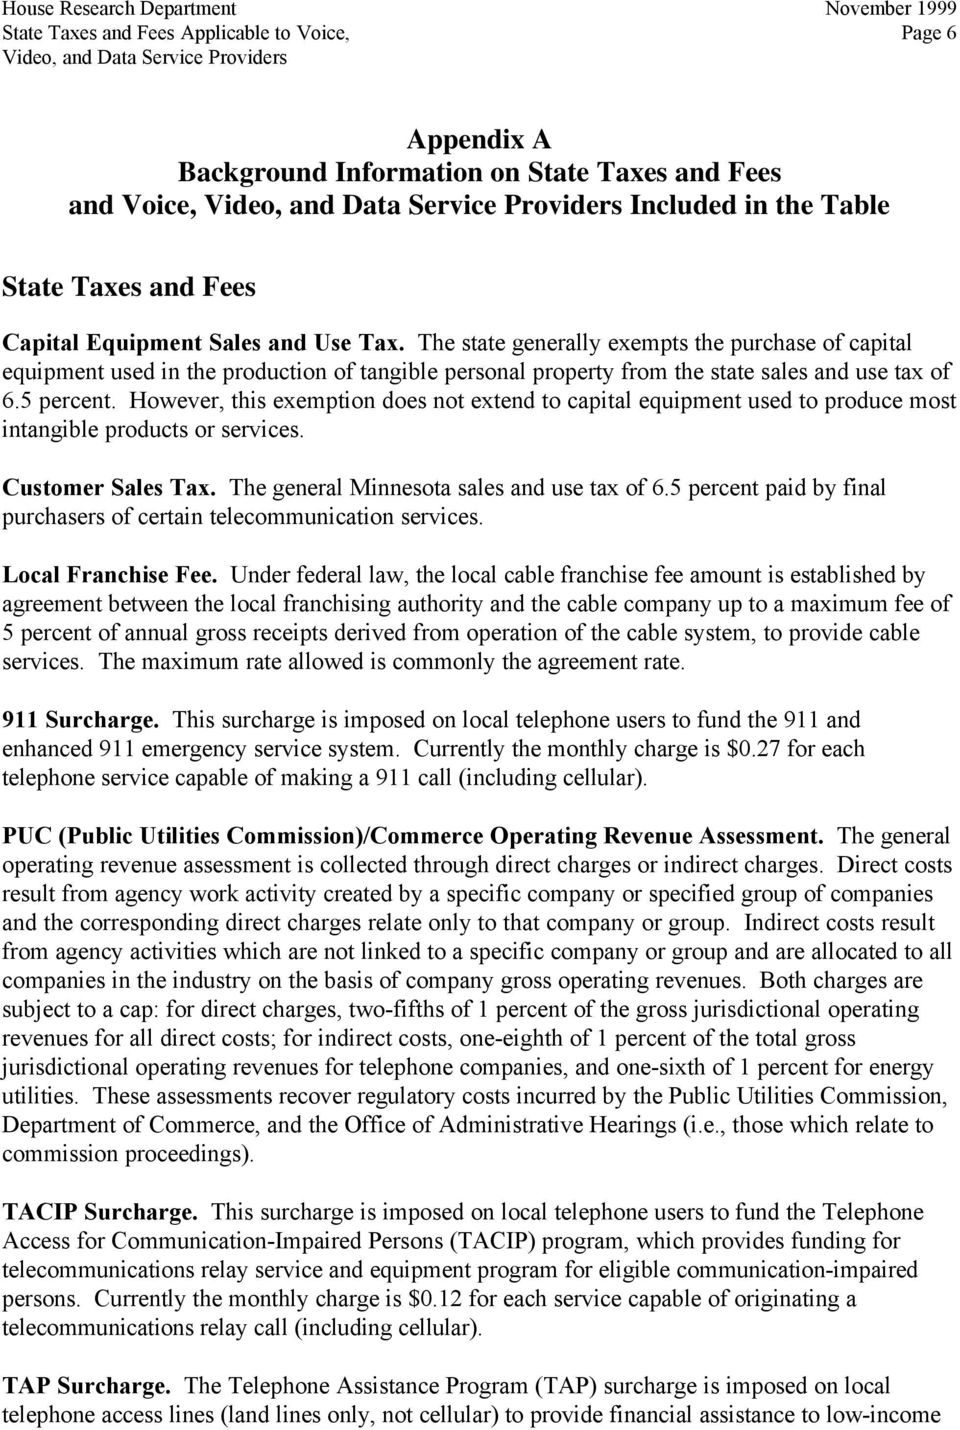 However, this exemption does not extend to capital equipment used to produce most intangible products or services. Customer Sales Tax. The general Minnesota sales and use tax of 6.